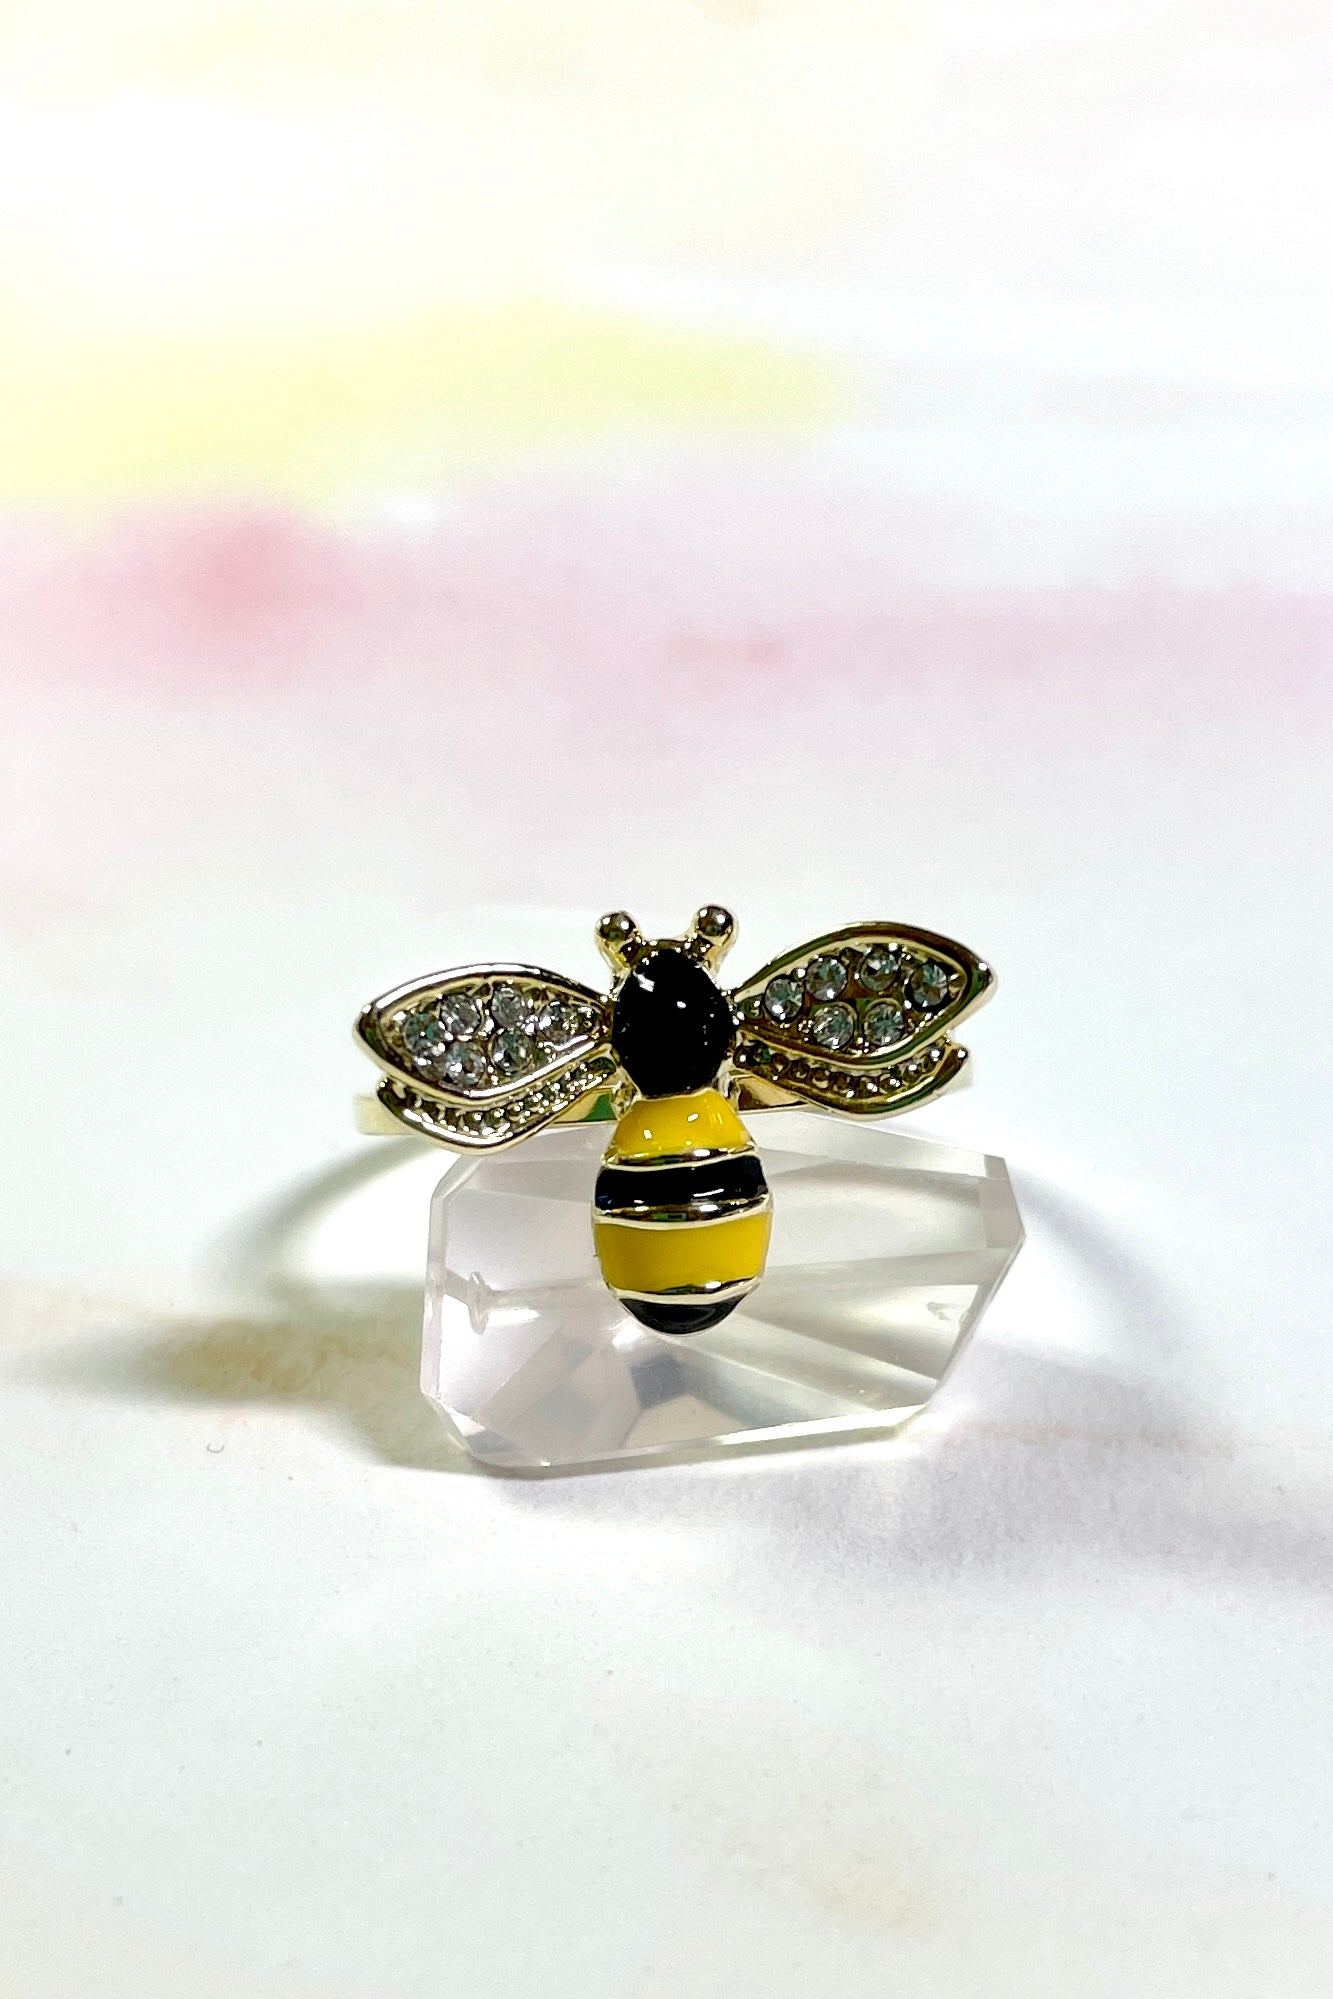 Do a happy little bee dance wearing this cutie.